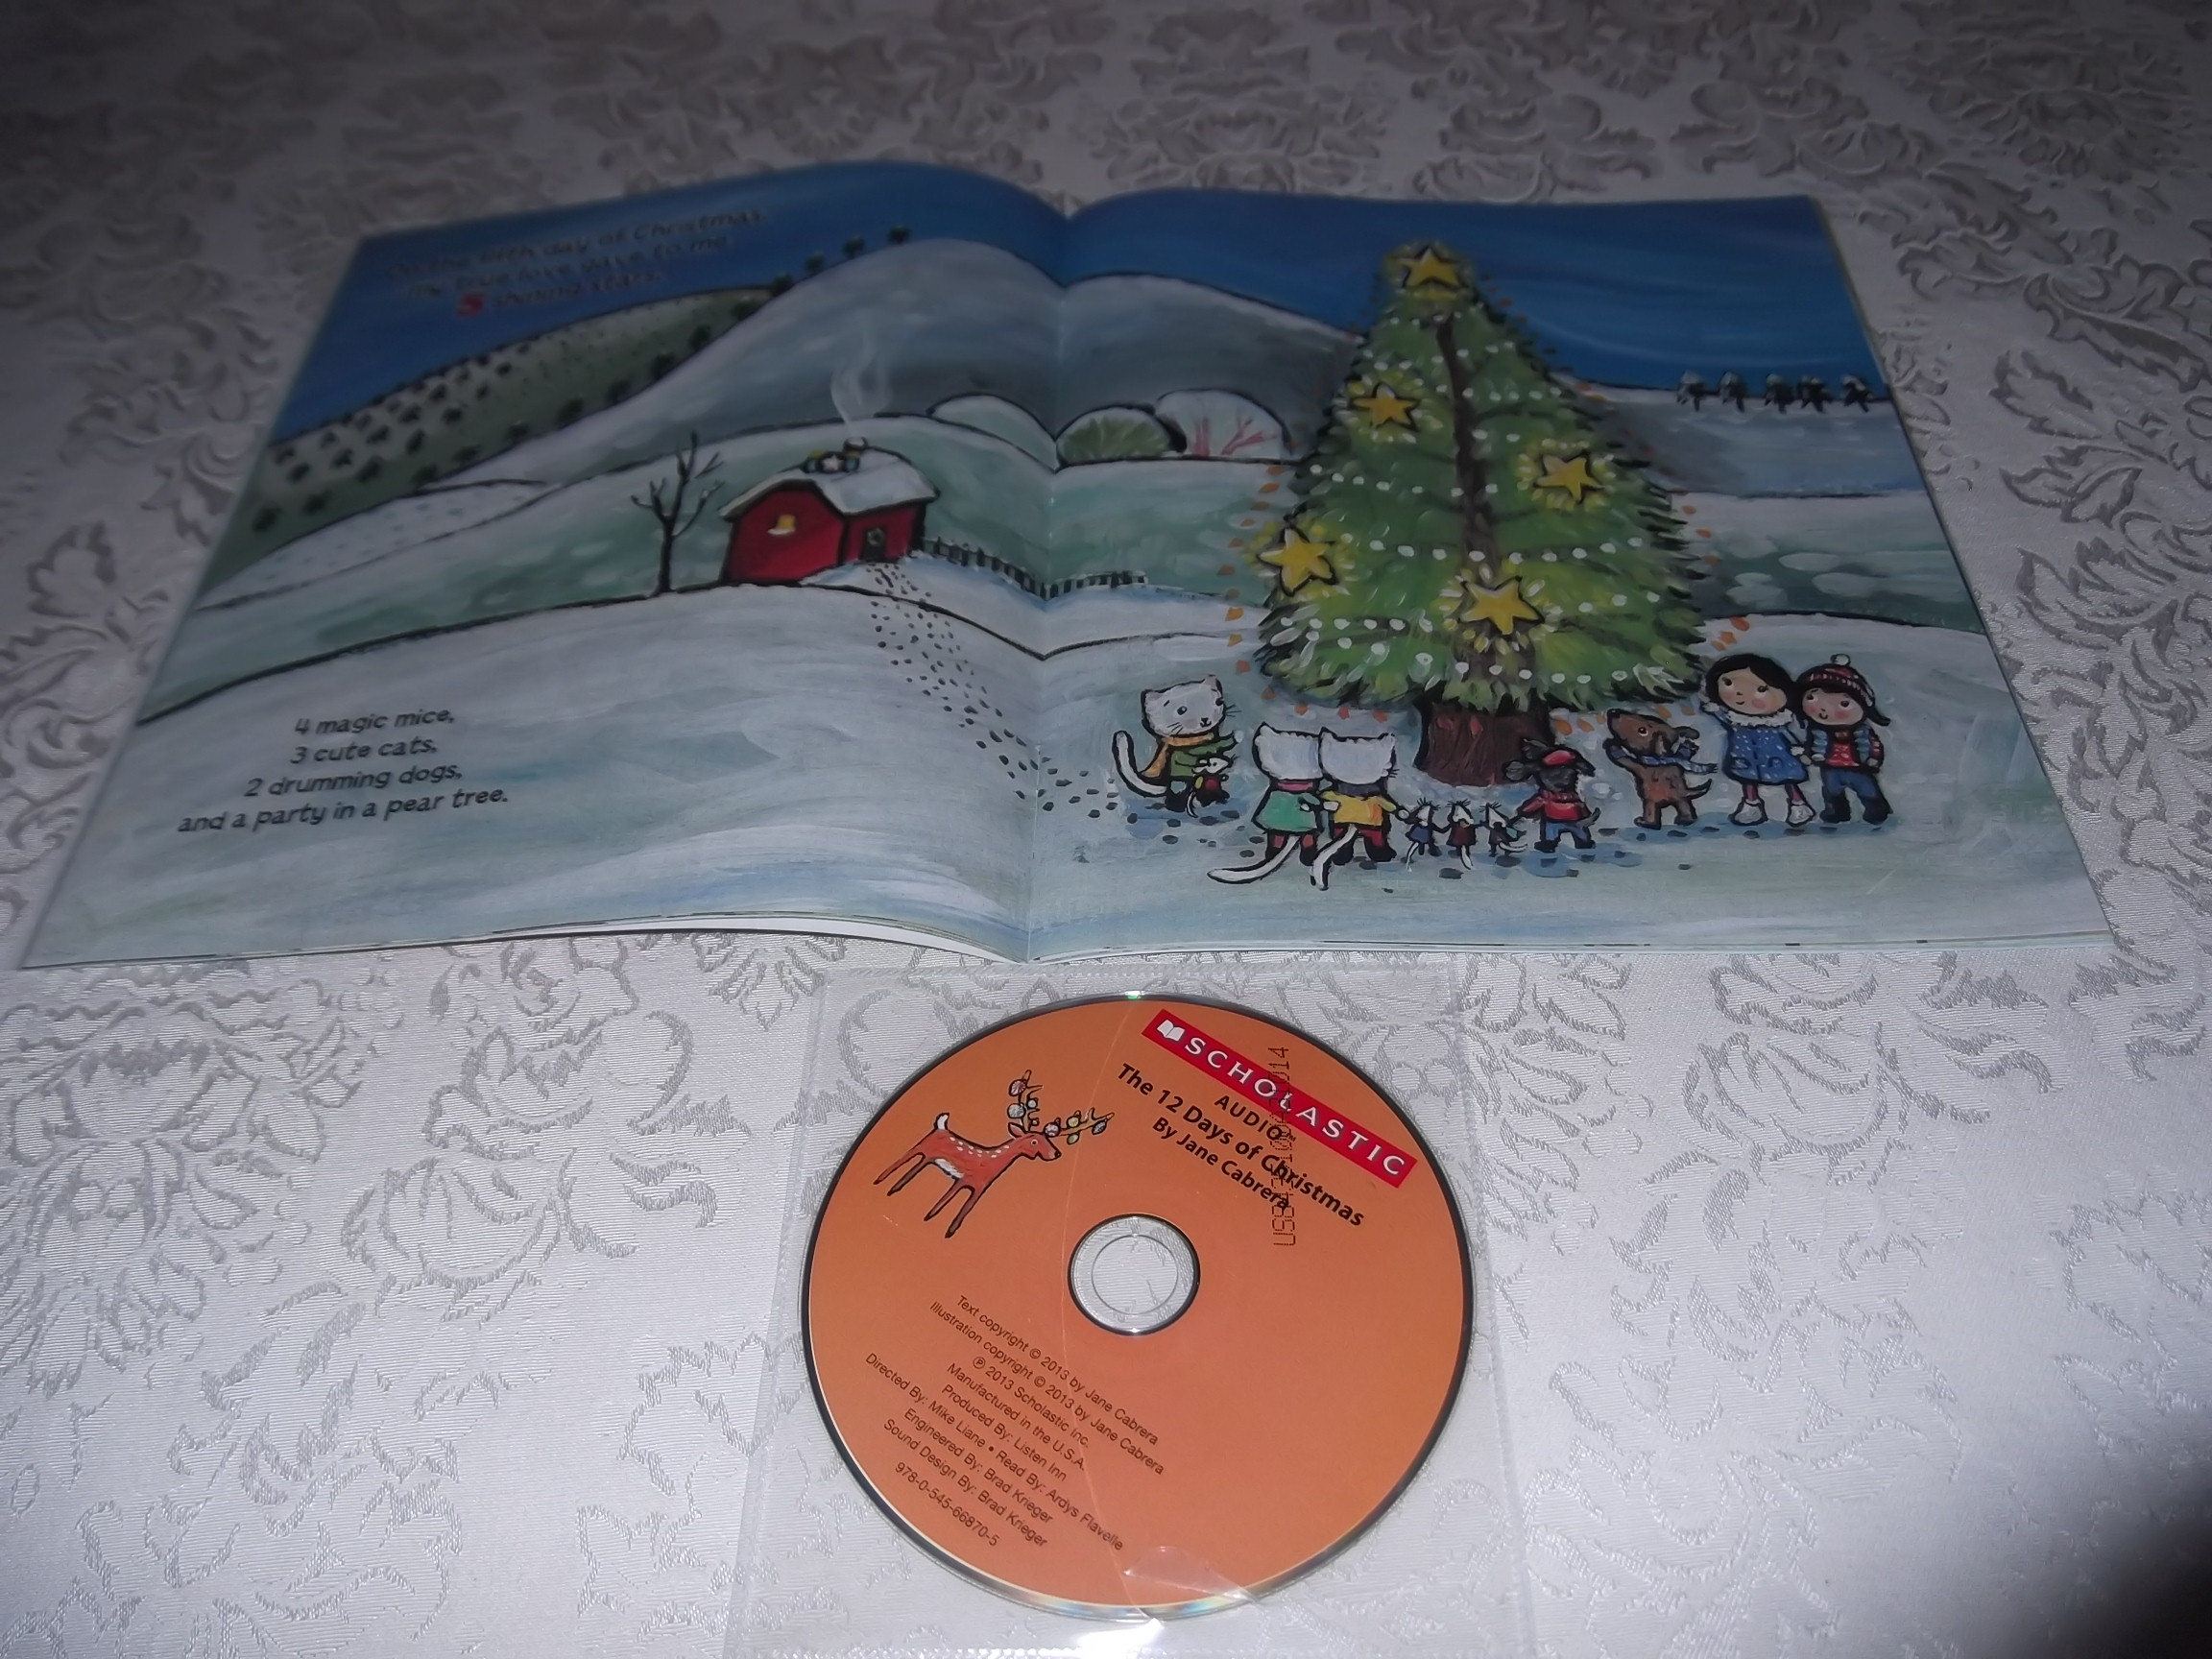 Image 10 of The 12 Days of CHRISTMAS Jane Cabrera Brand New Audio CD and Softcover